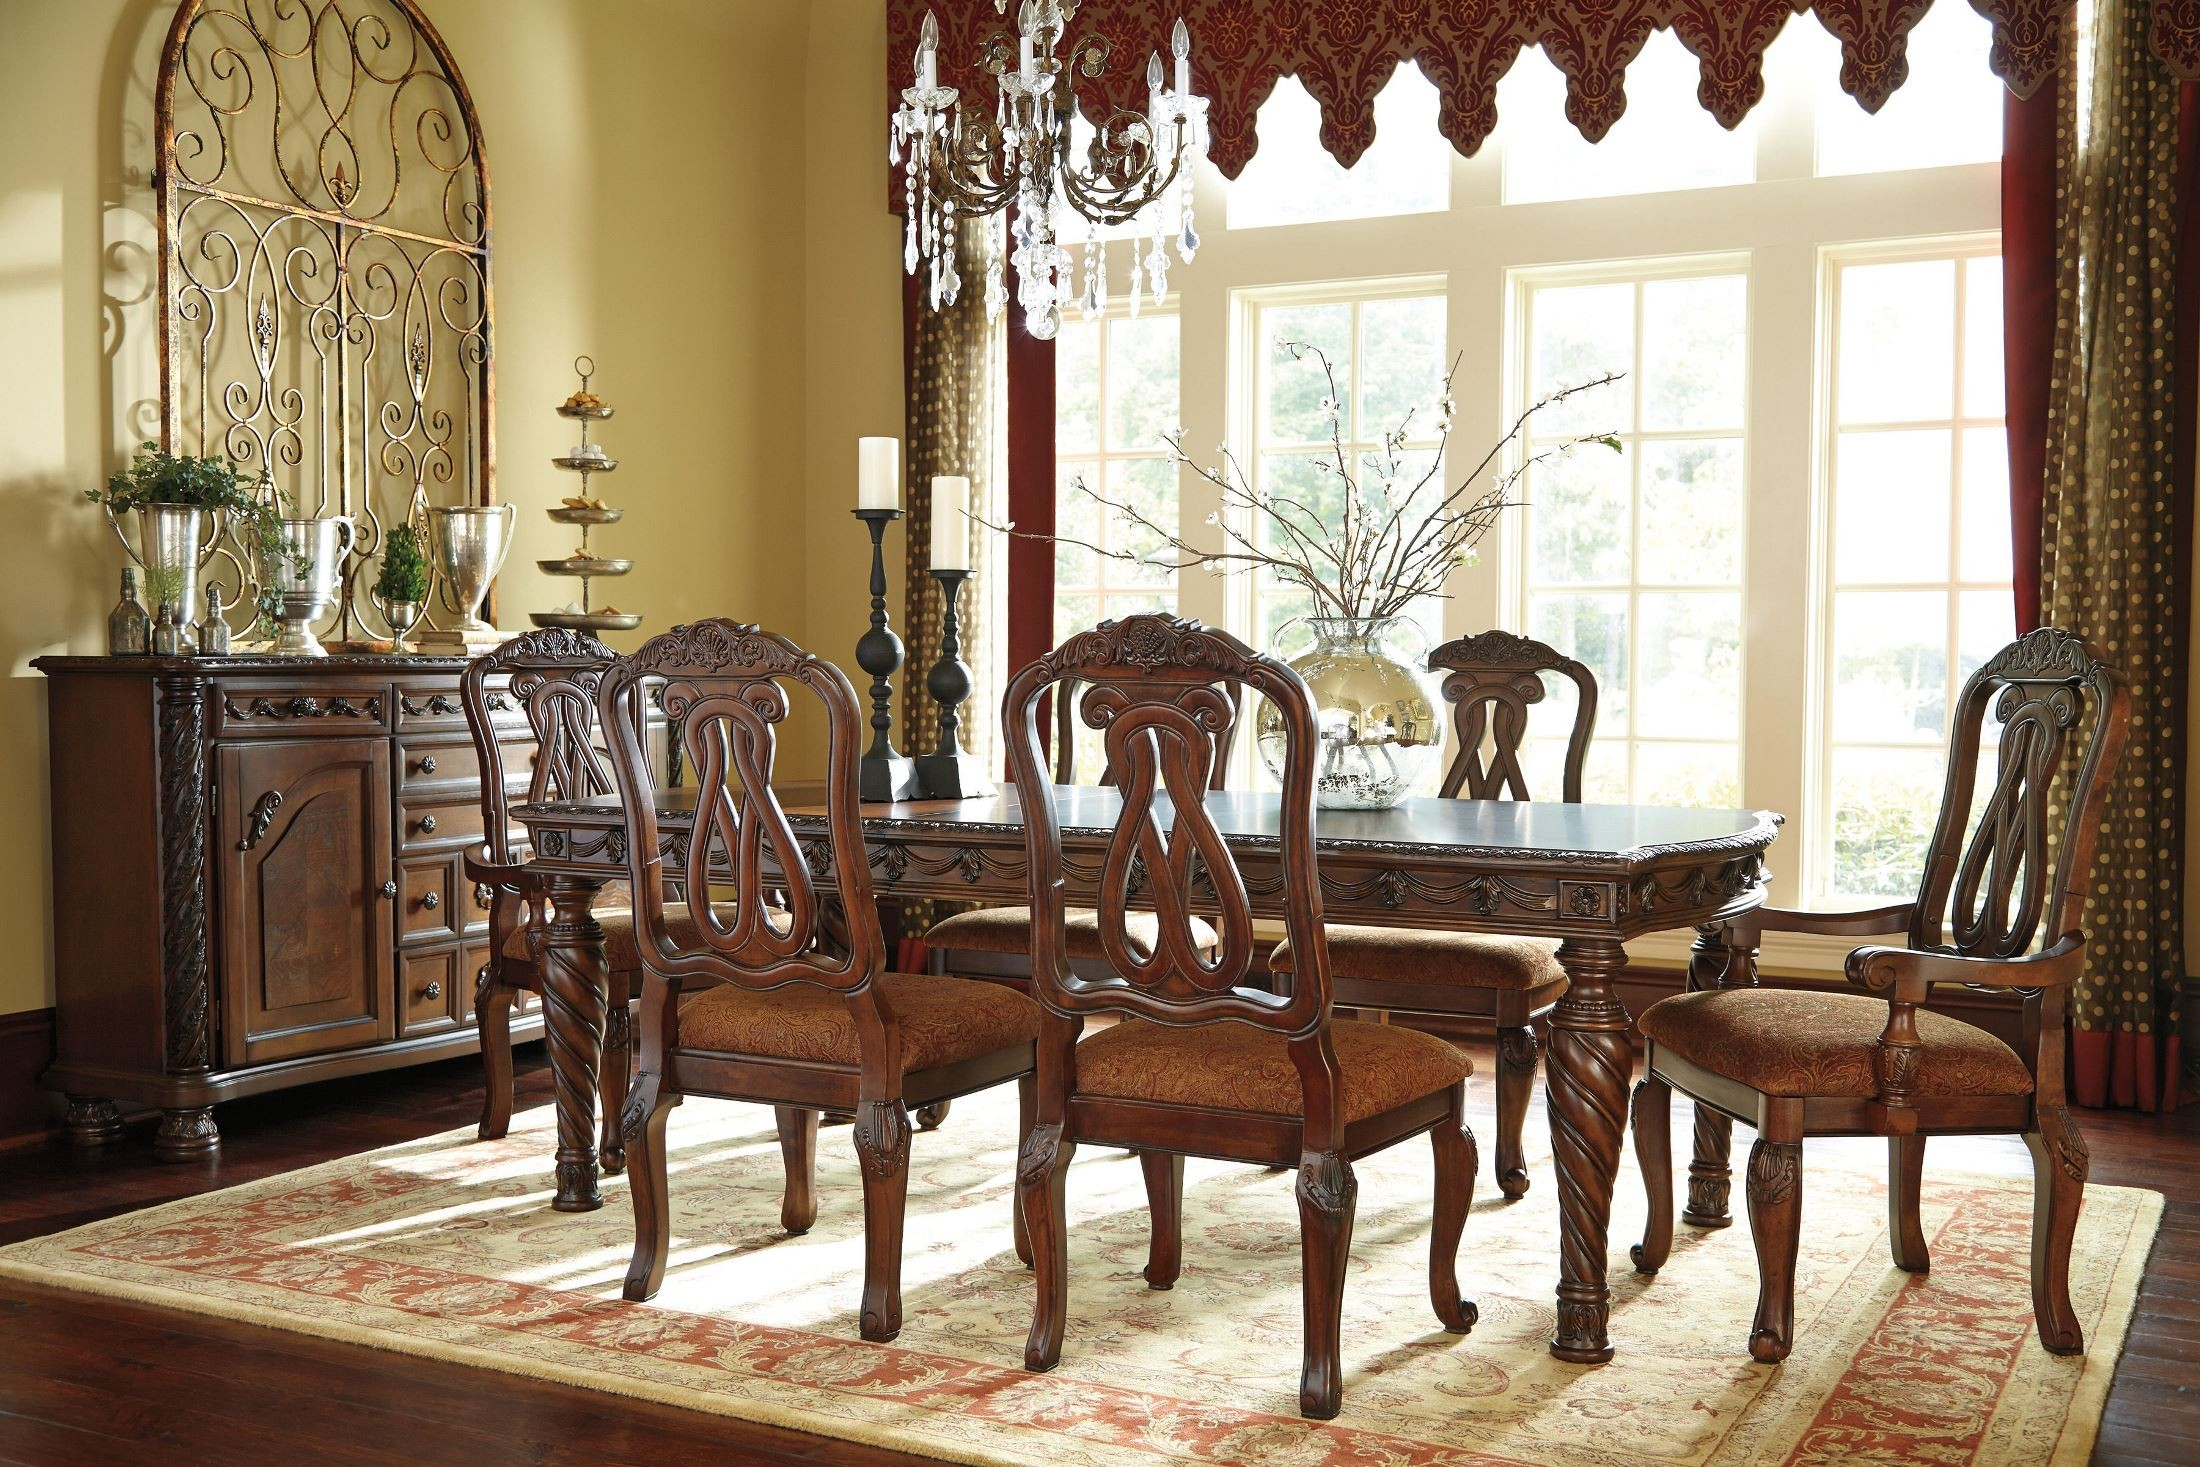 North shore rectangular extendable dining room set 1697952 2298845 1697954 1697949